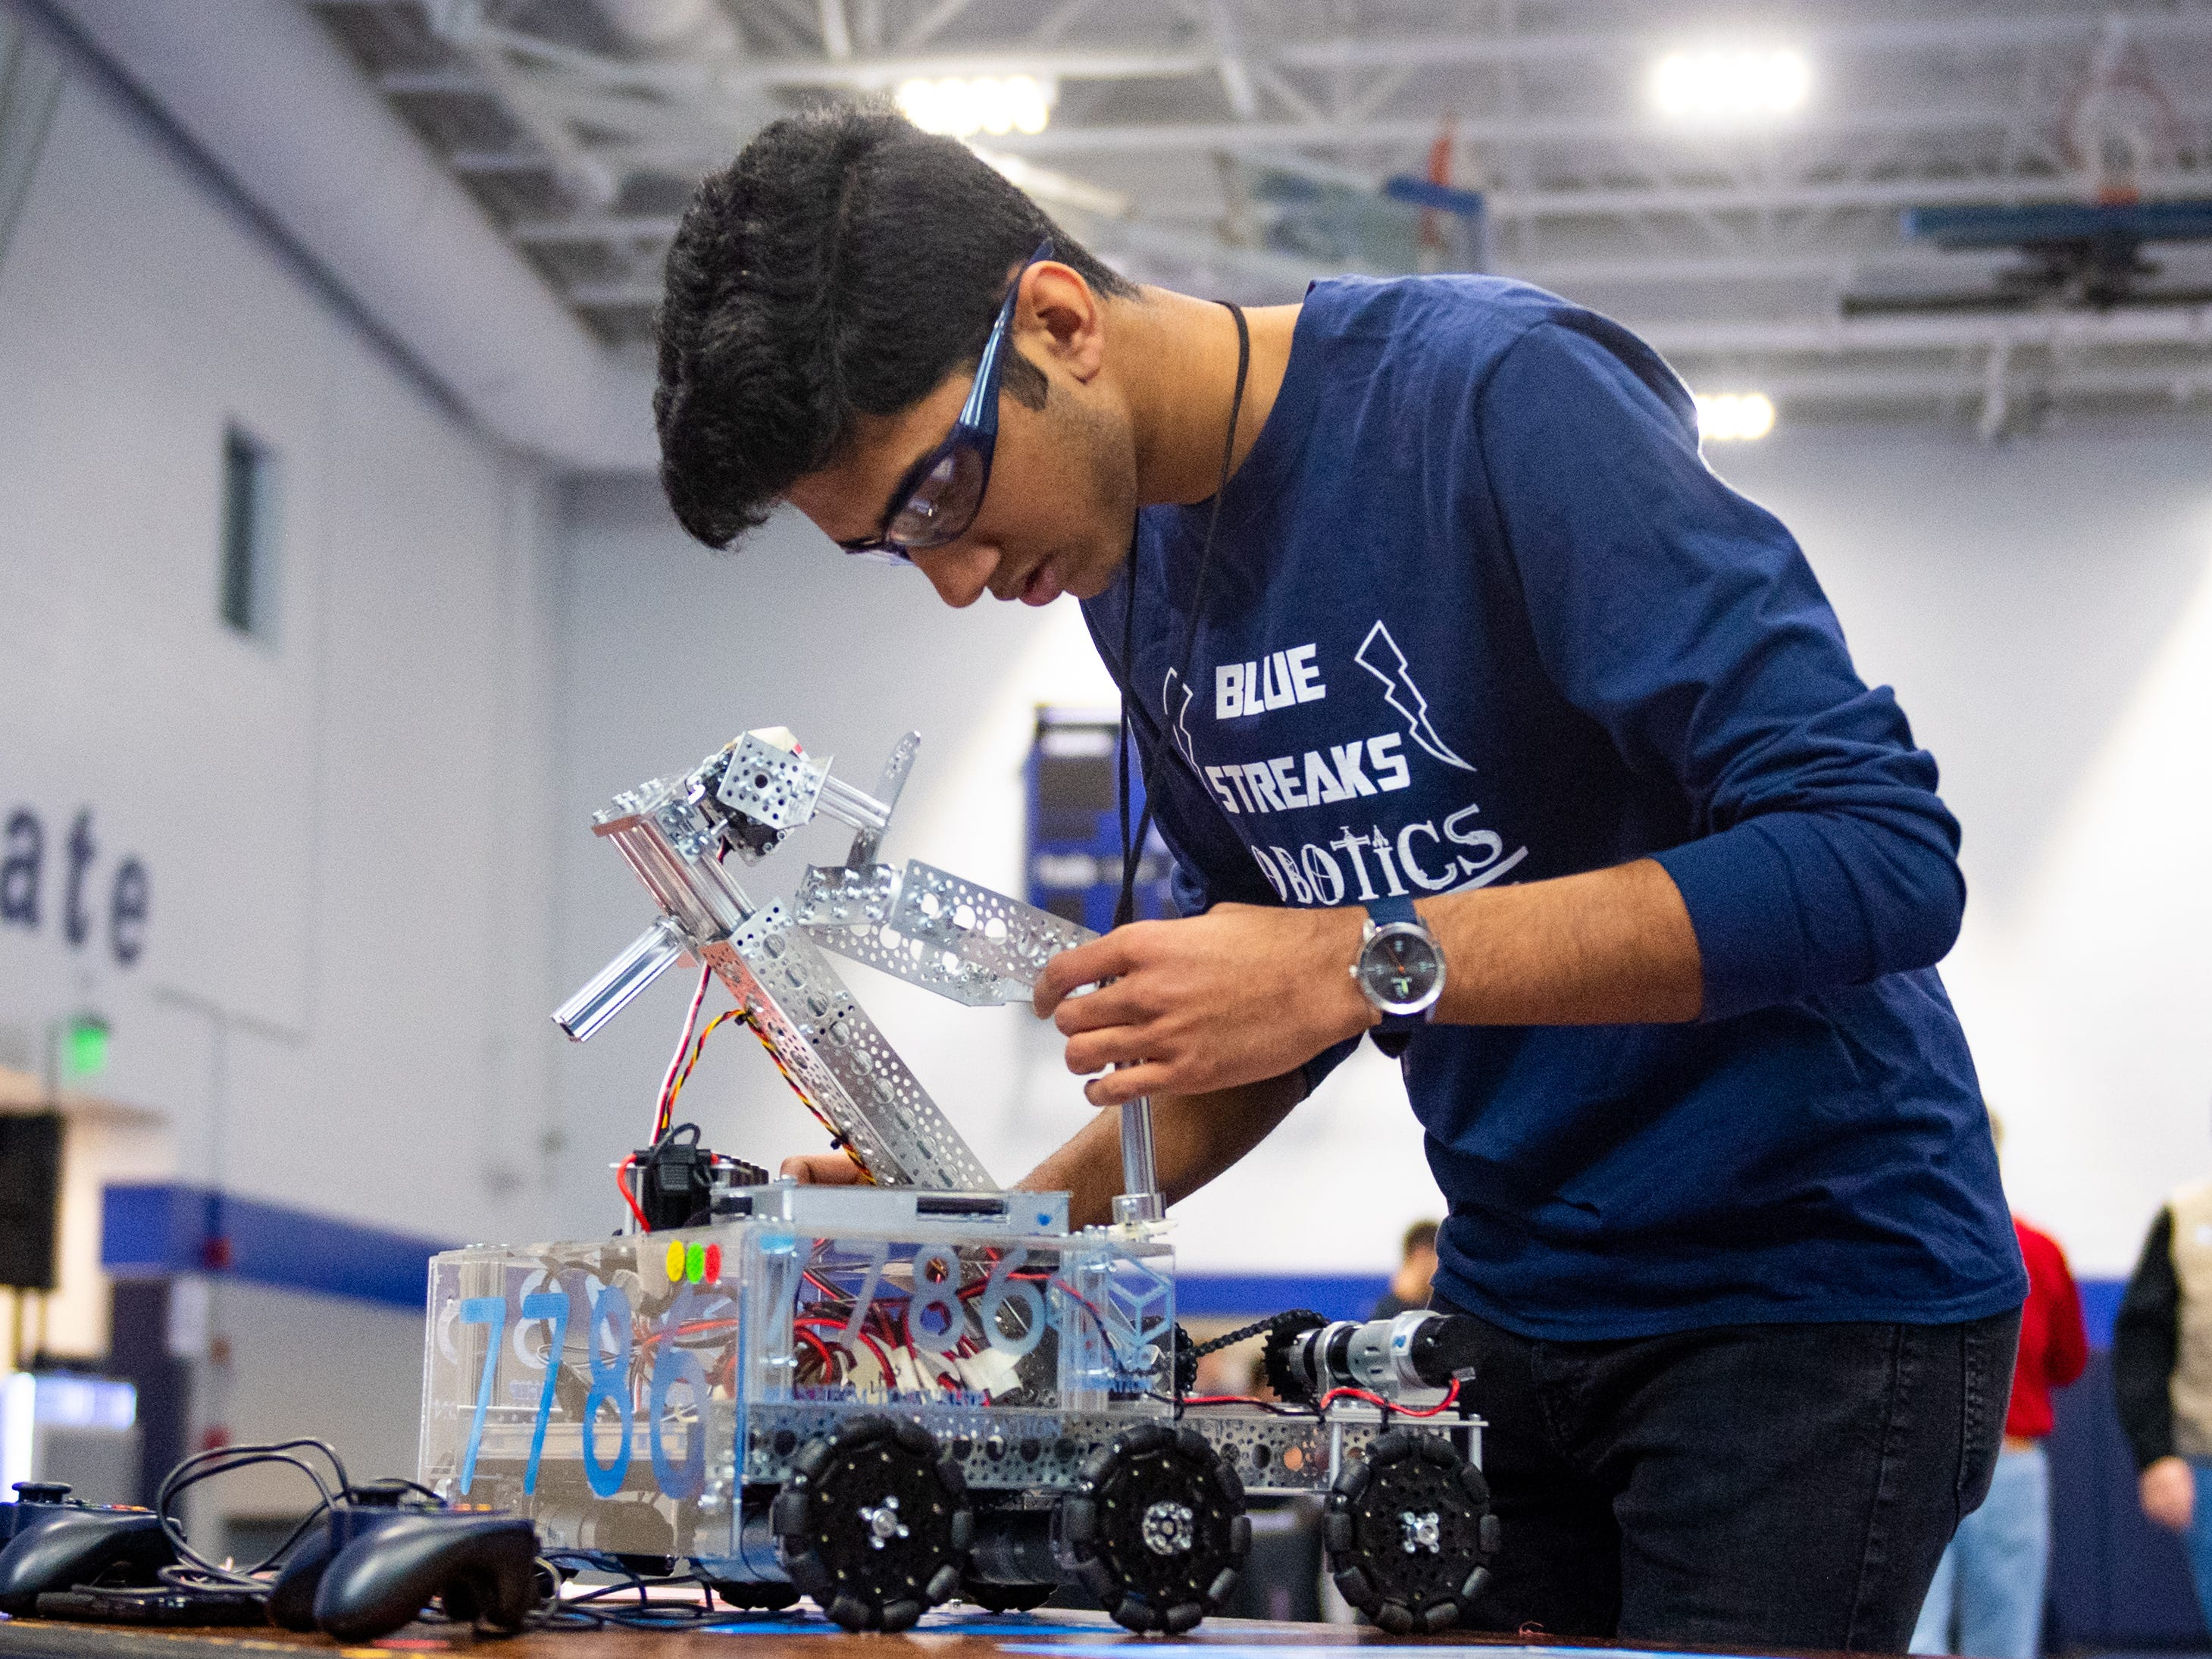 The Manheim Township High School Blue Streaks give their robot one more inspection before taking it to the ring during the First Tech Challenge robotics competition at Penn State York, February 2, 2019.